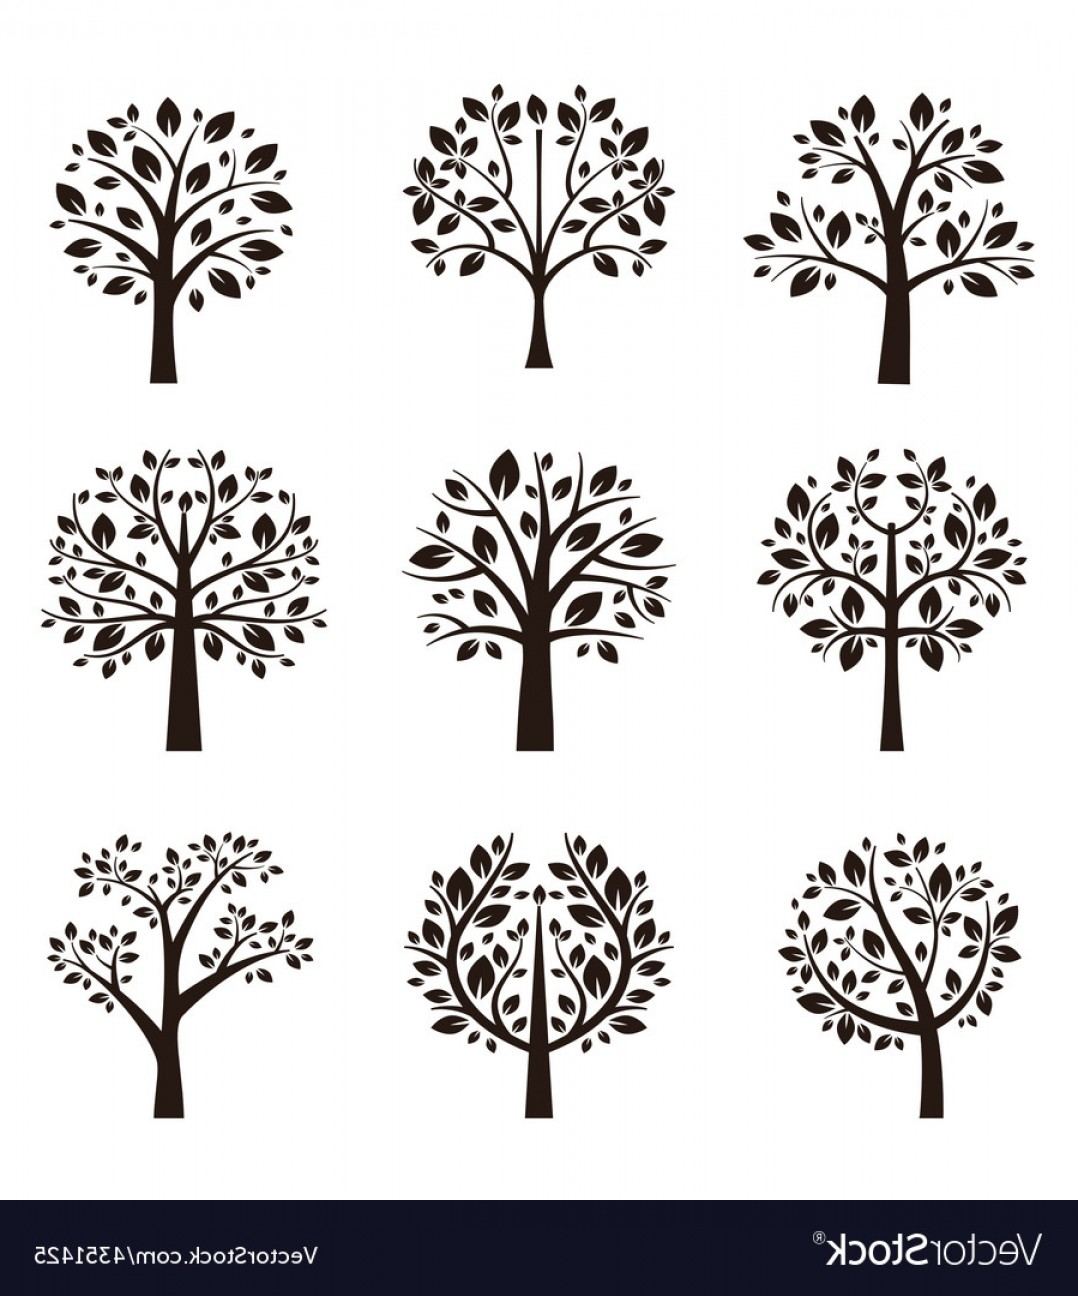 Continuous Tree Branch Vector Image: Tree Silhouette With Roots And Branches Vector